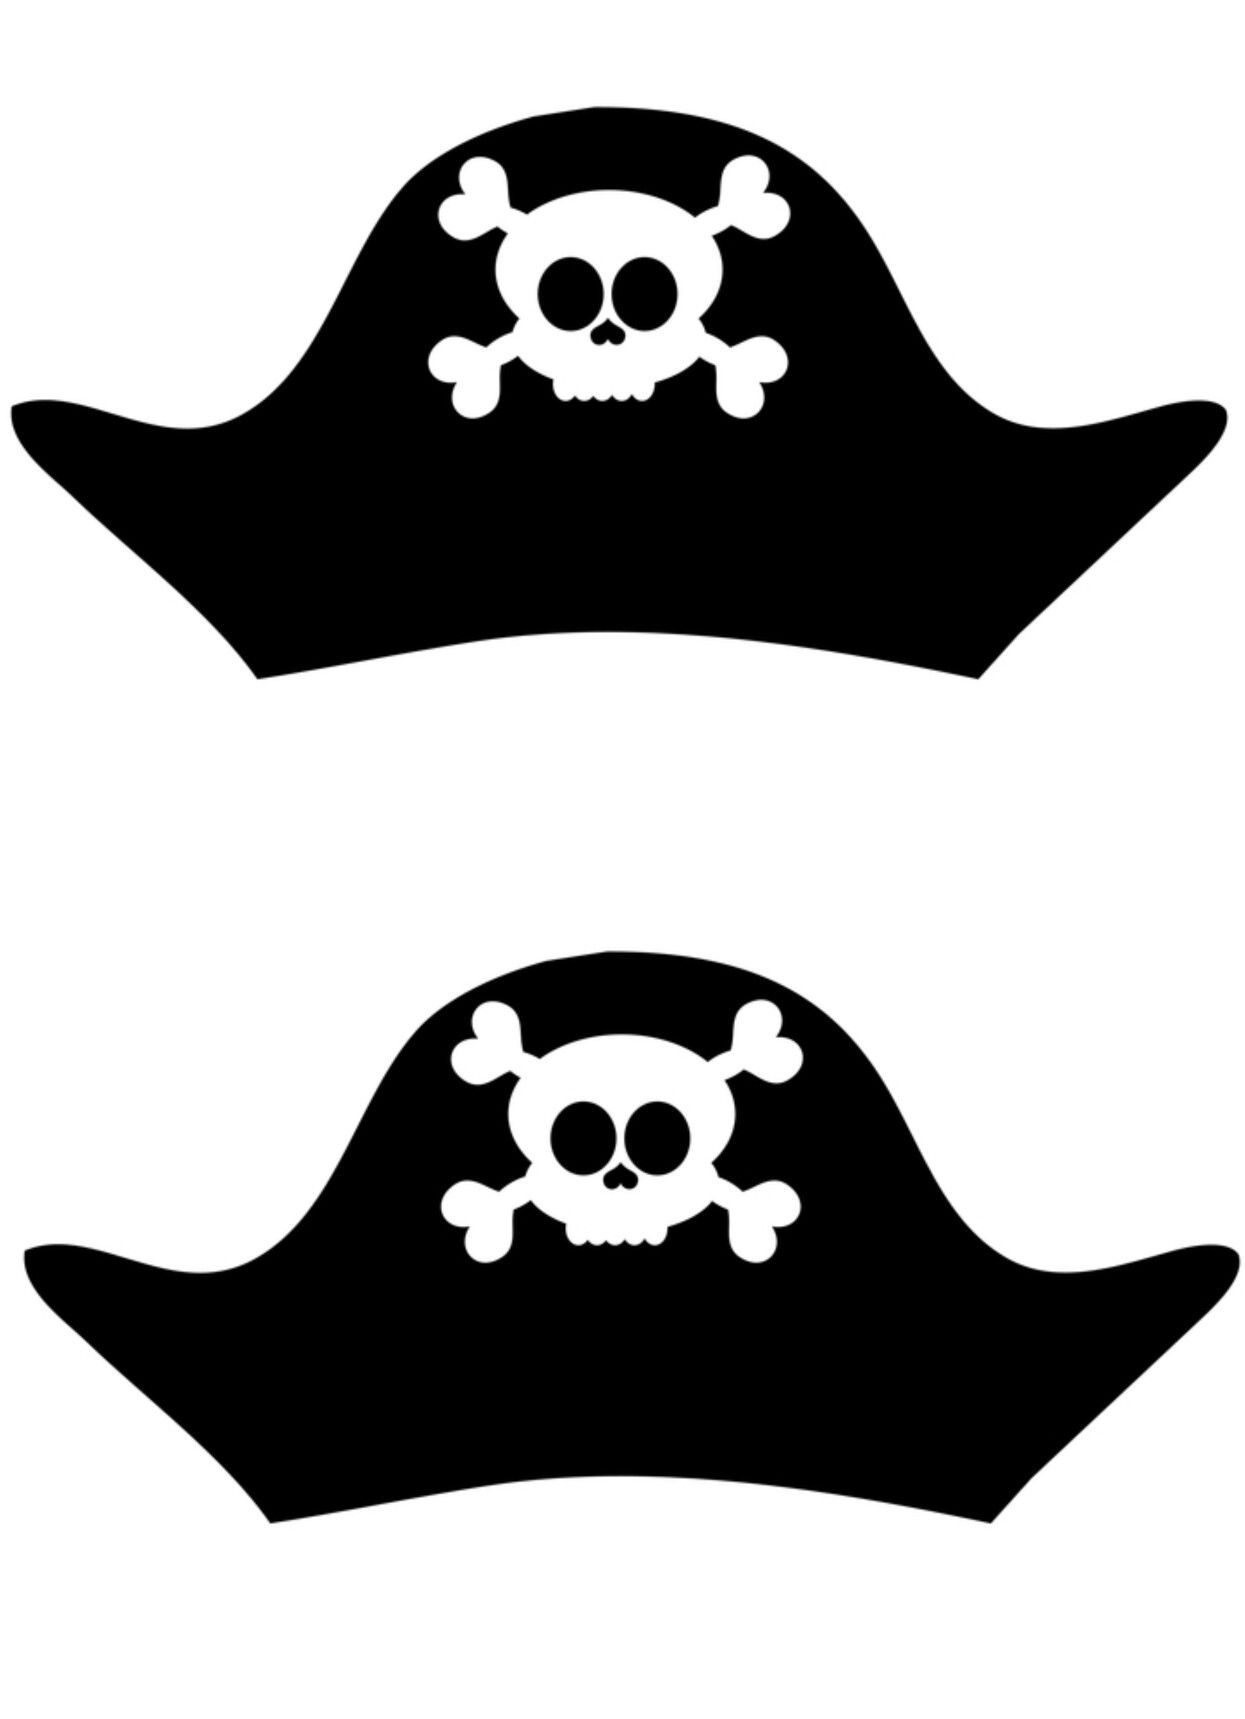 Pin by anamaria fonnegra on gnomos pinterest pirate hats and